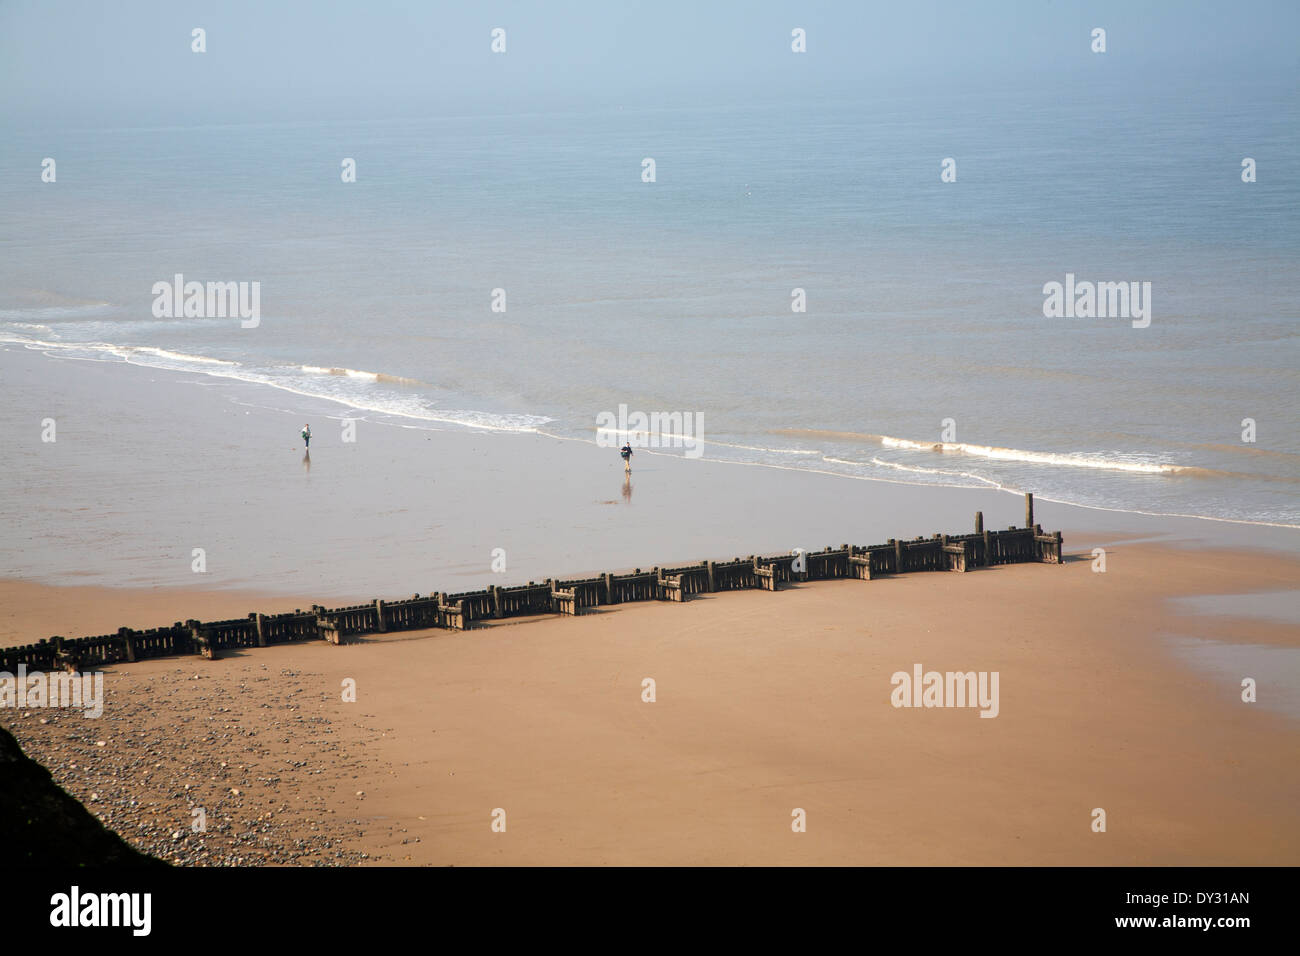 Overhead oblique view of two people walking across wide sandy beach at low tide, Overstrand, Norfolk, England - Stock Image